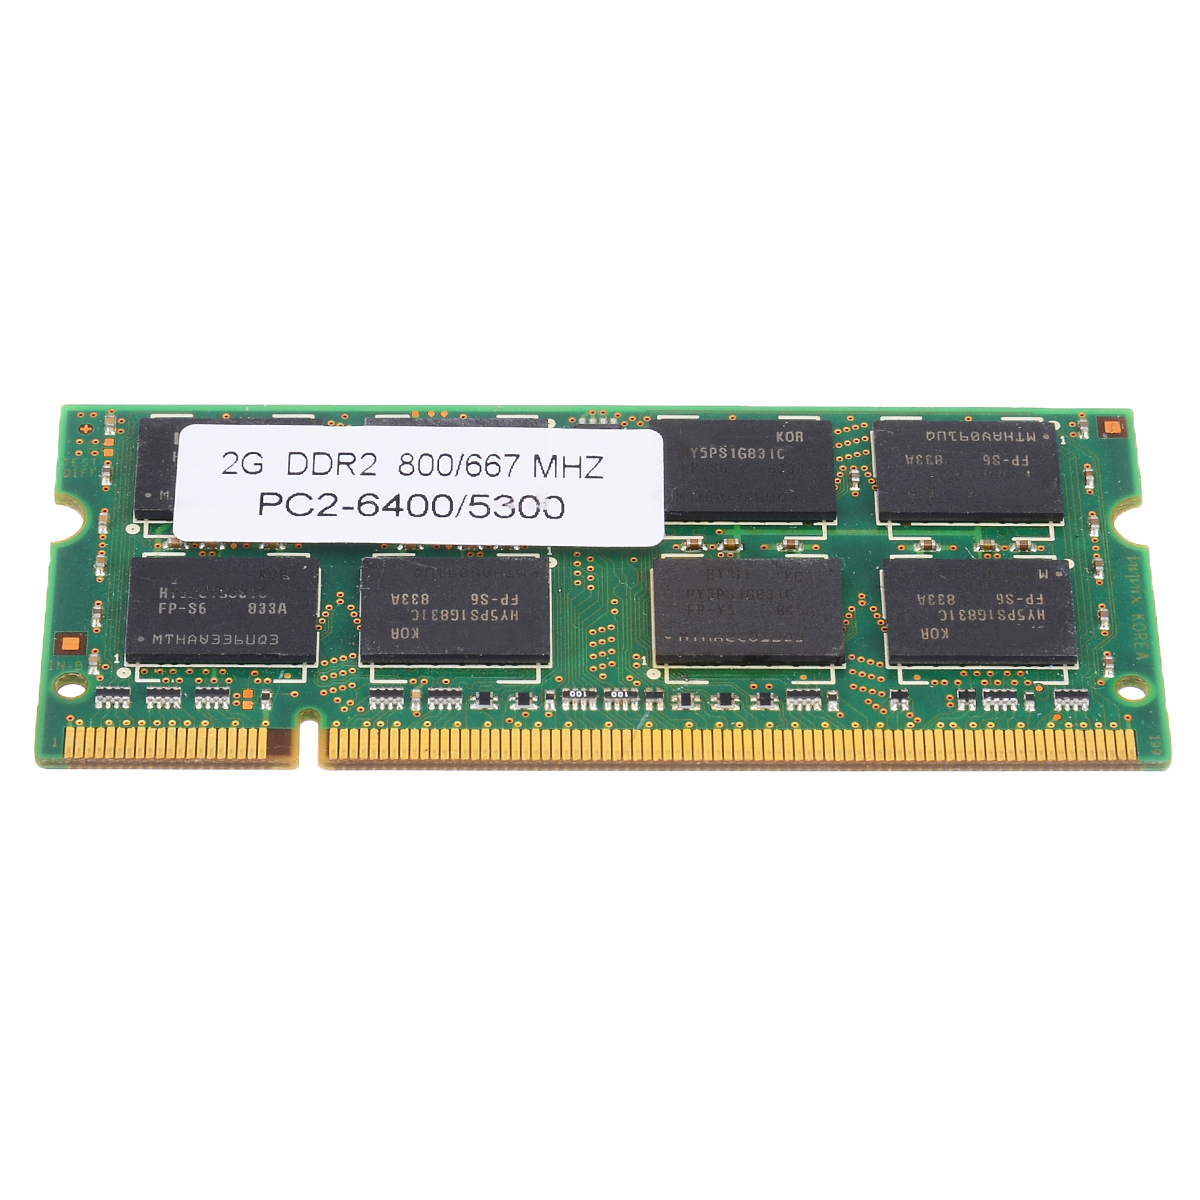 Laptop Memory DDR2 With 2GB PC2 6400/5300 800/667MHZ Low-Density 7